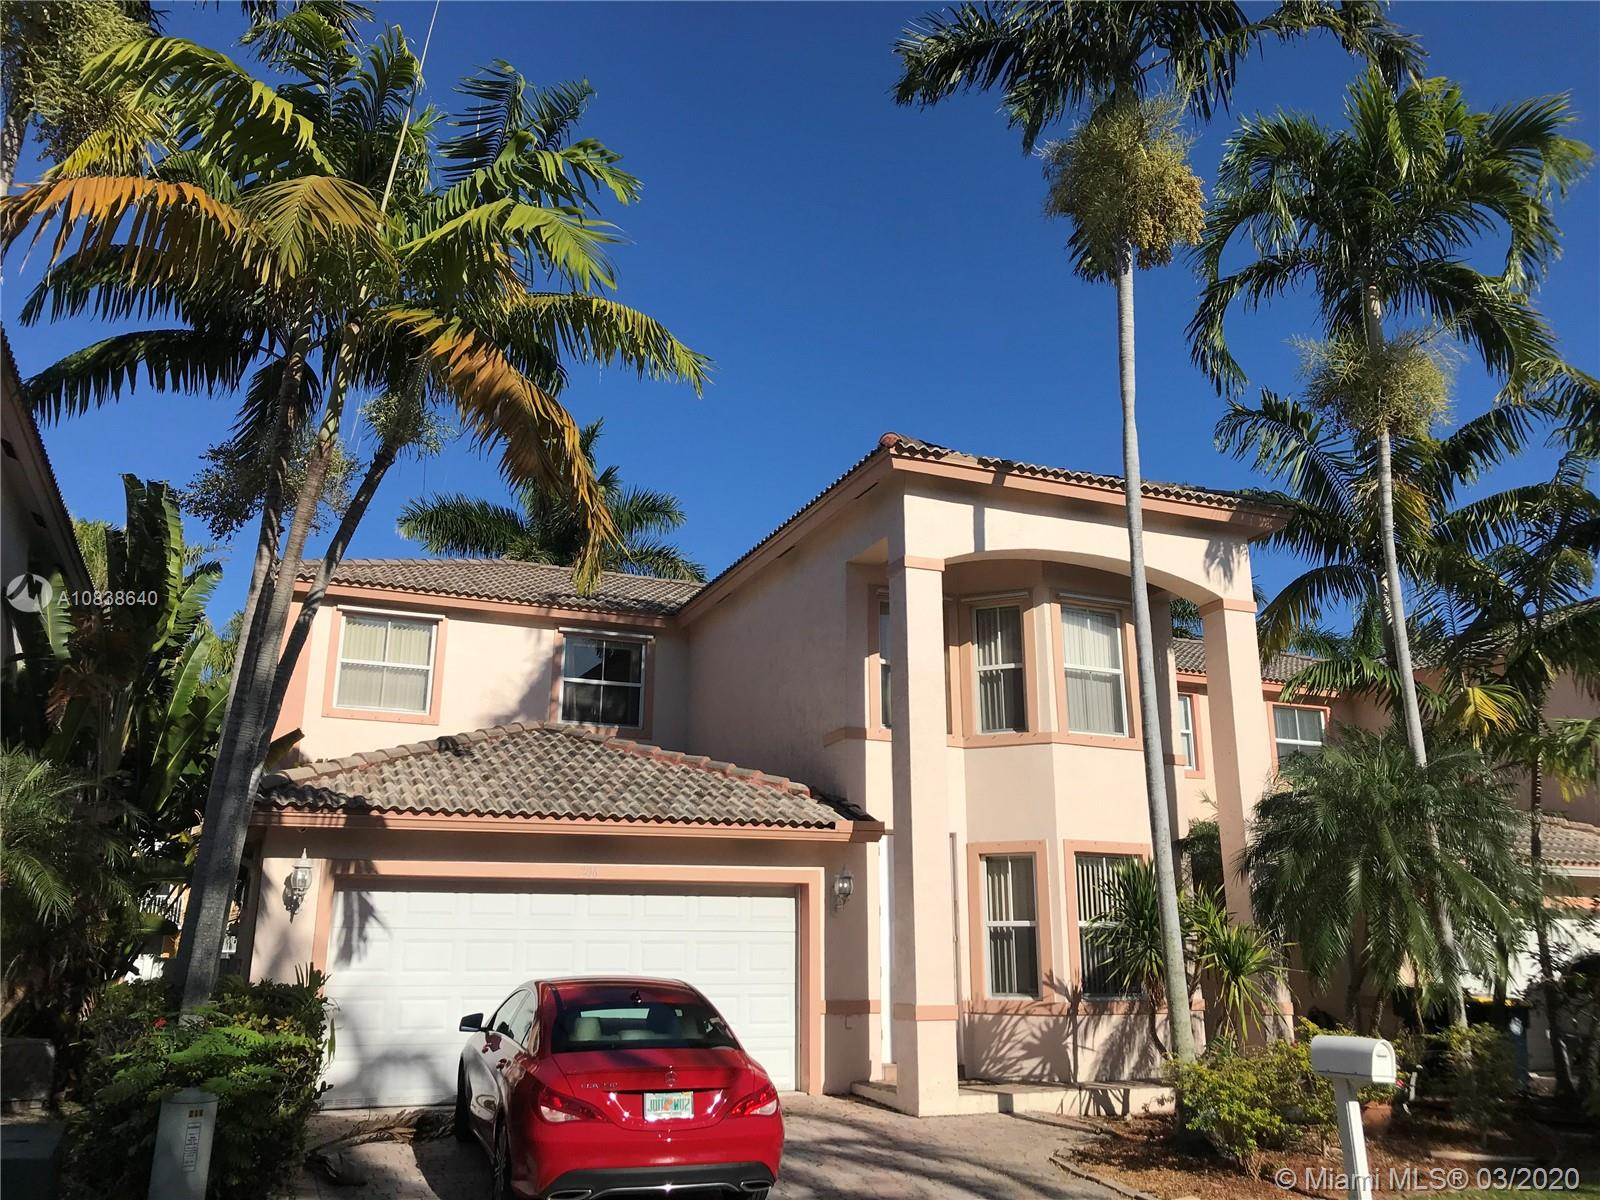 "VACANT. Beautiful 3/2+ loft with wet bar. 3rd bedroom used as closet, easily made back to room. 2005 built home, high ceilings throughout, 20"" tile floors downstairs, new wood laminate in bedrooms. Custom wall fireplaces. Kitchen has 42"" cabinets, stainless steel appliances, alkaline H2O system & breakfast area overlooking family room. Large master with huge walk in closets. Master bath has dual sinks, jetted tub & separate shower. PVC fenced yard with high end artificial grass for easy maintenance. Storage shed. 2 car garage. Smart home panels, cameras & surround sound with soundport to phone. Hurricane shutters throughout. Gated community with only 19 homes & no strict rules. 1.5 Miles to the beach & Hollywood Boardwalk. Close to Airports, cafes, shopping, casinos, parks & nightlife."